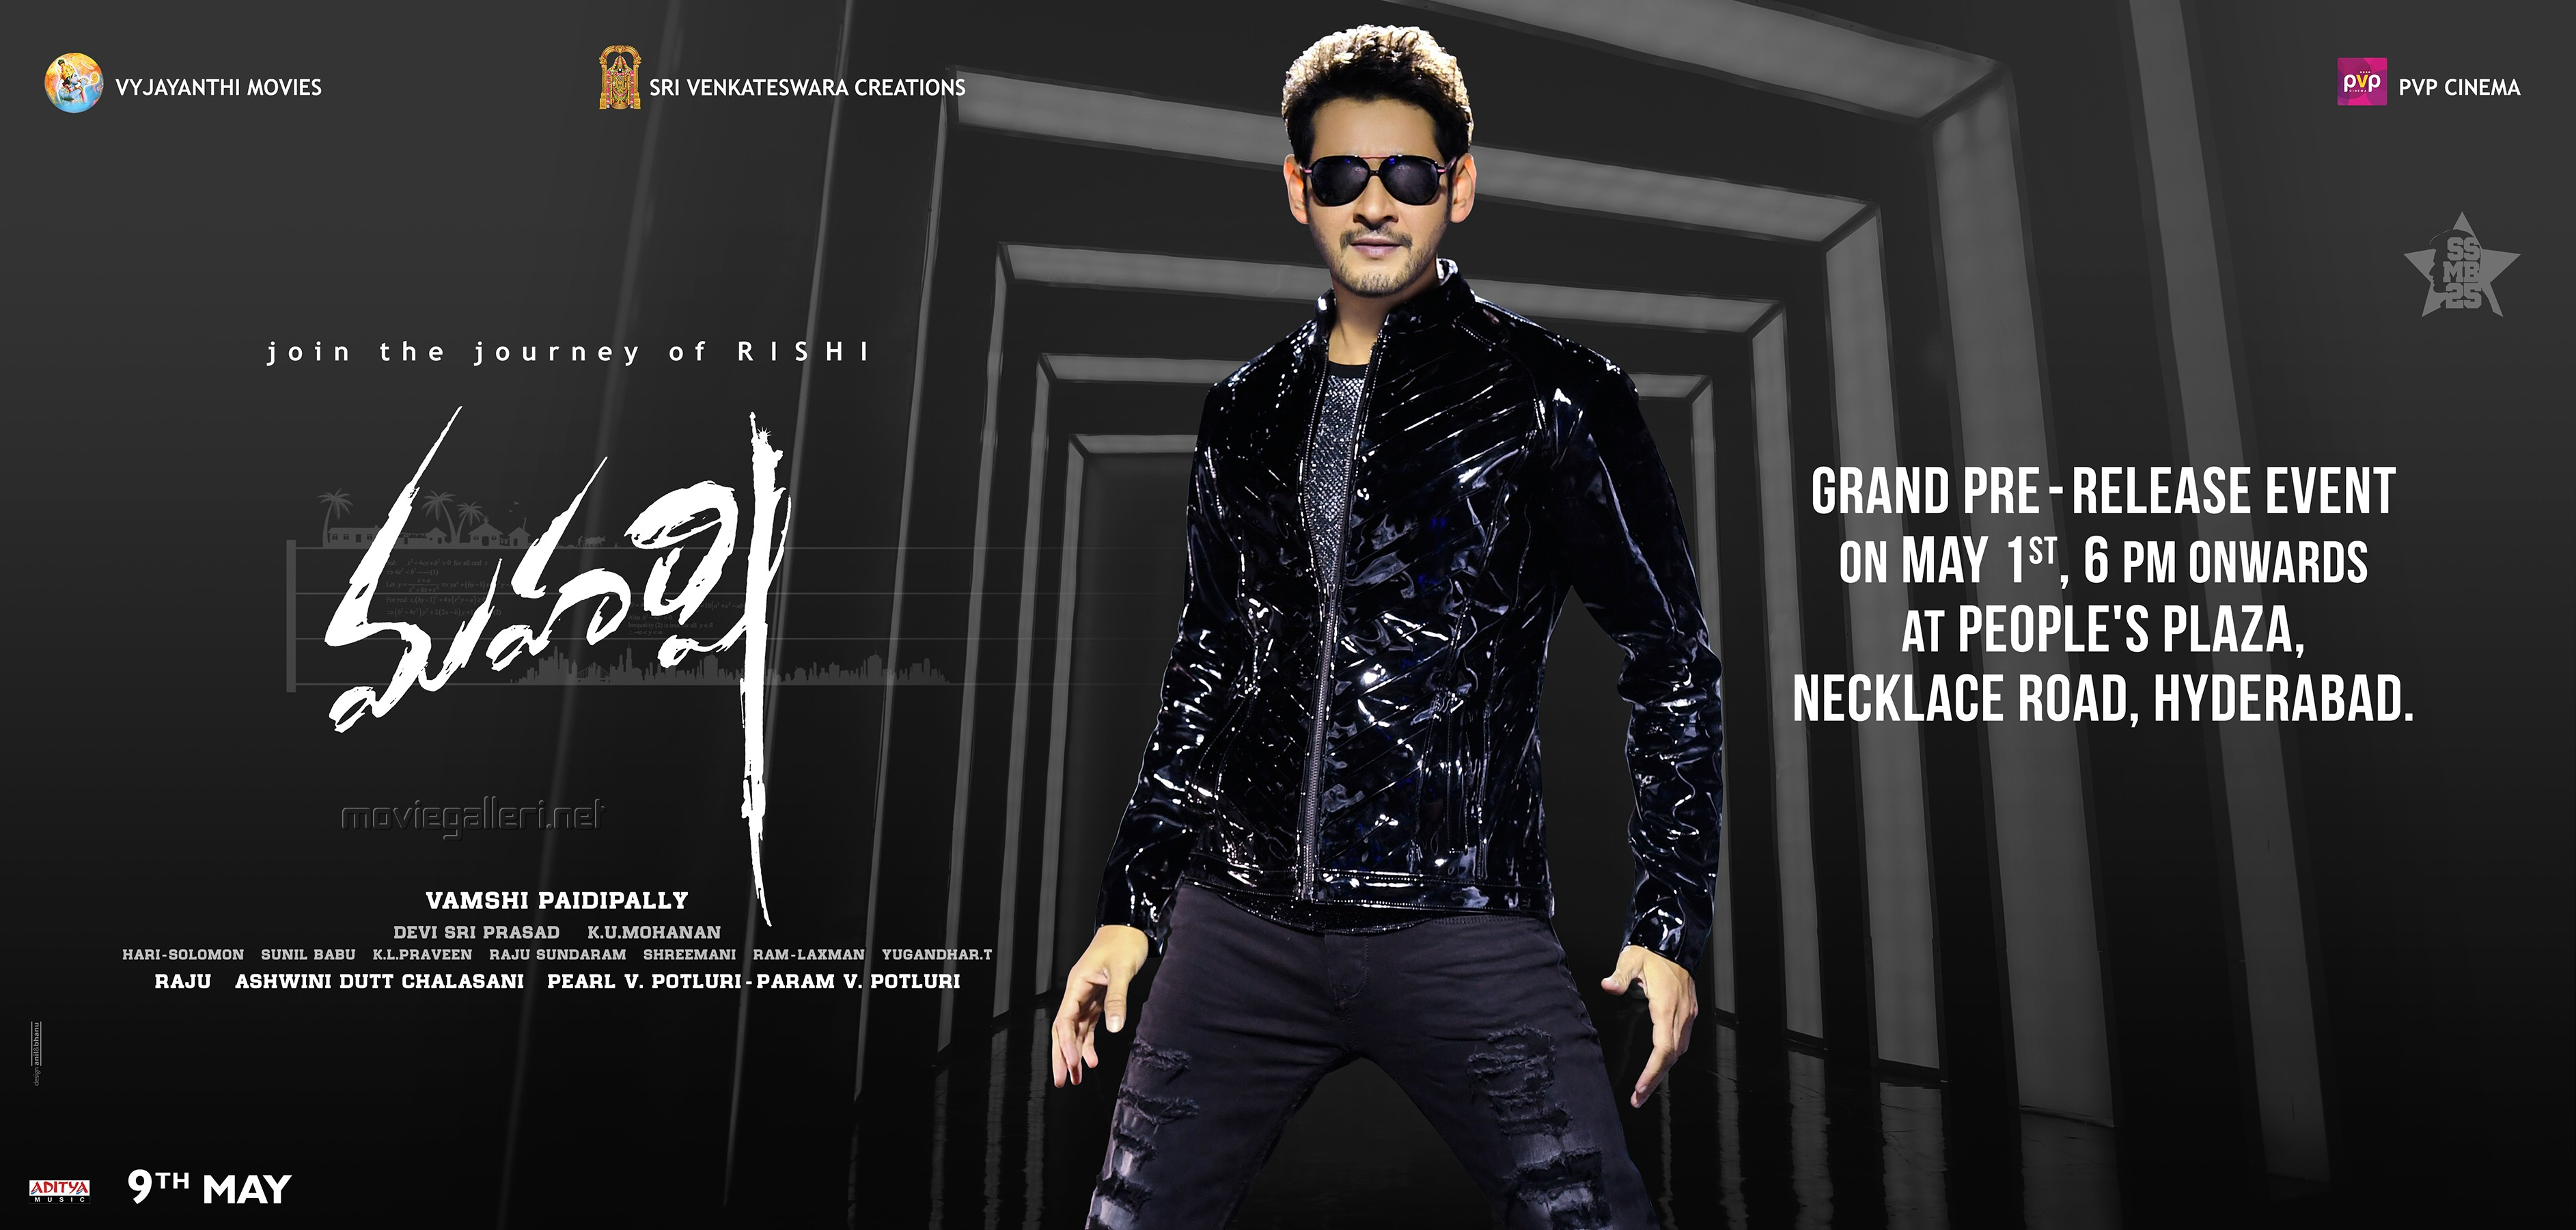 Super Star Mahesh Babu Maharshi Grand Pre Release Event on May 1st Poster HD